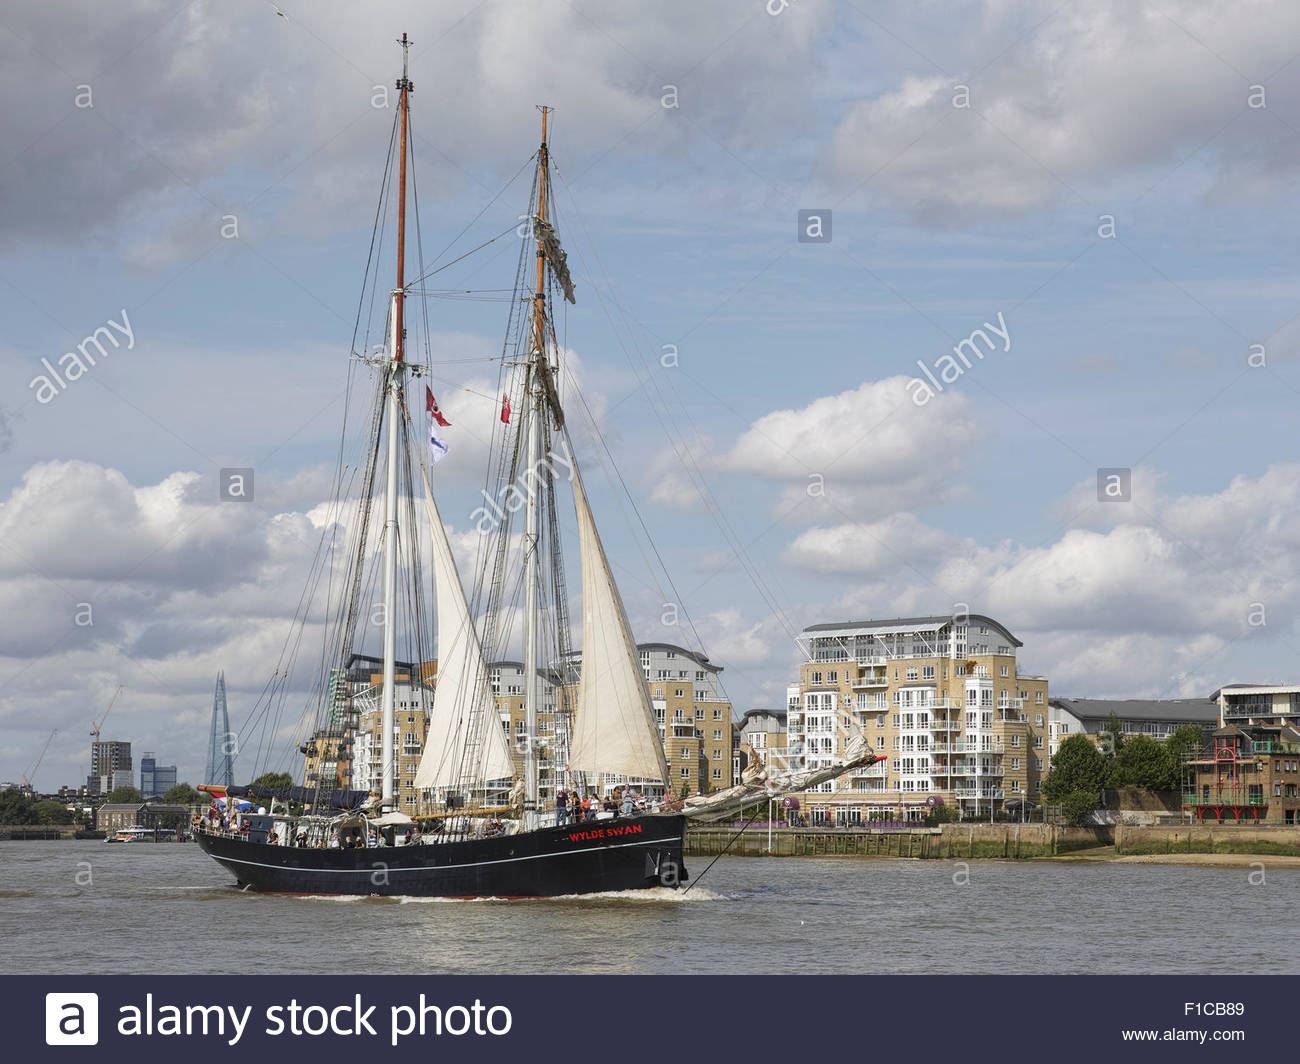 historic-topsail-schooner-wylde-swan-passes-the-isle-of-dogs-during-F1CB89.jpg